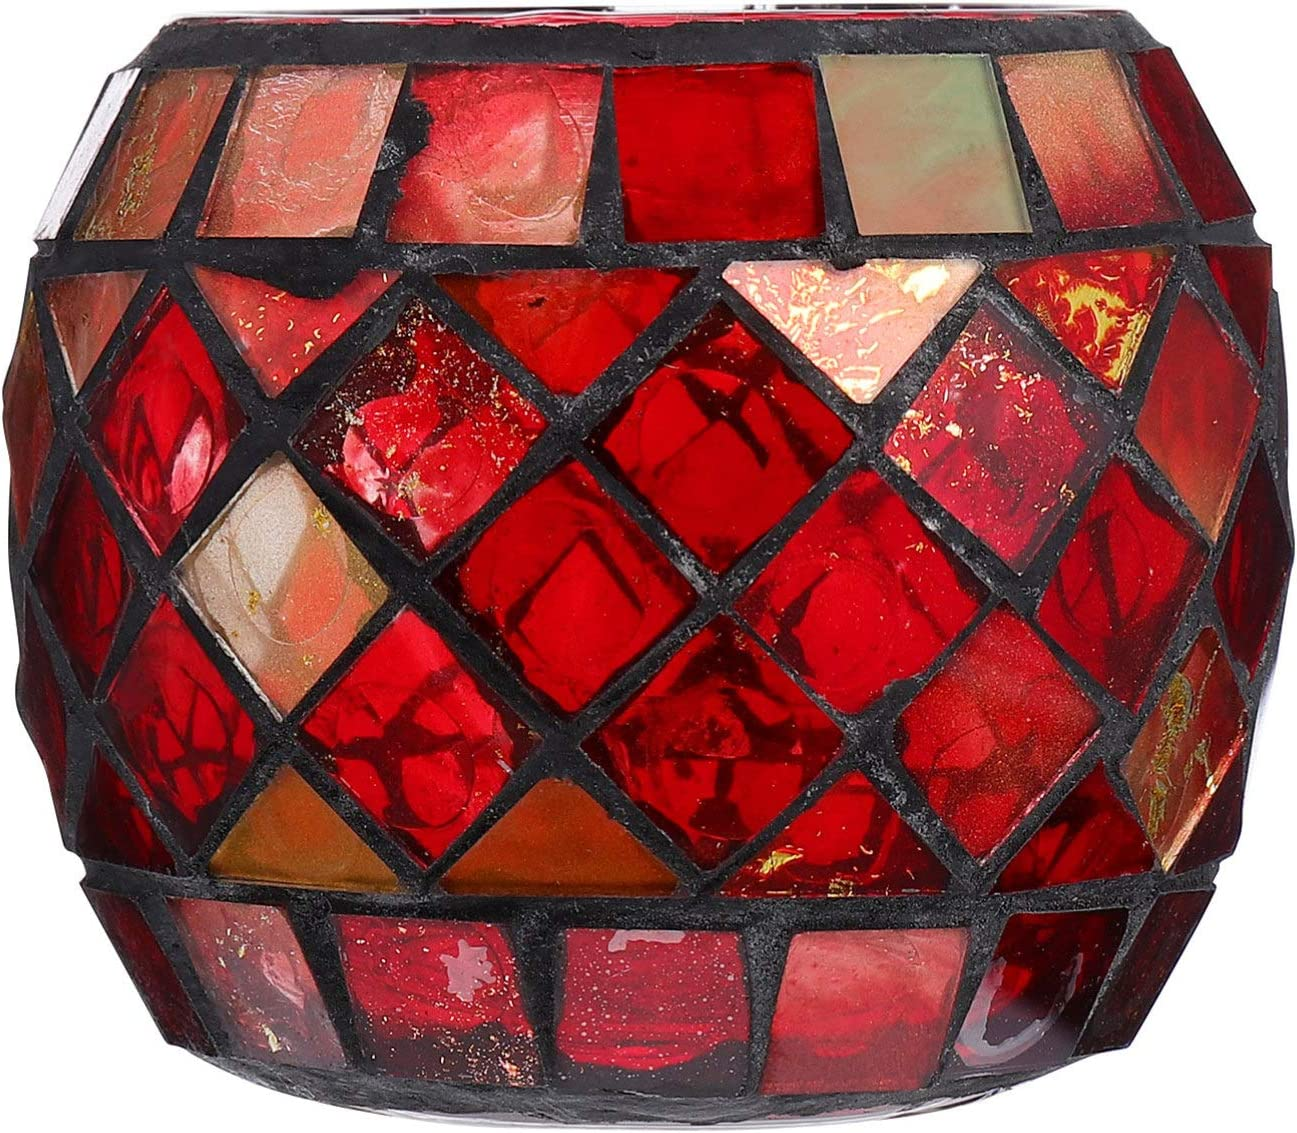 Mobestech Branded goods Glass Candle Holders Mosaic Can Votive Free Shipping New Holder Tealight